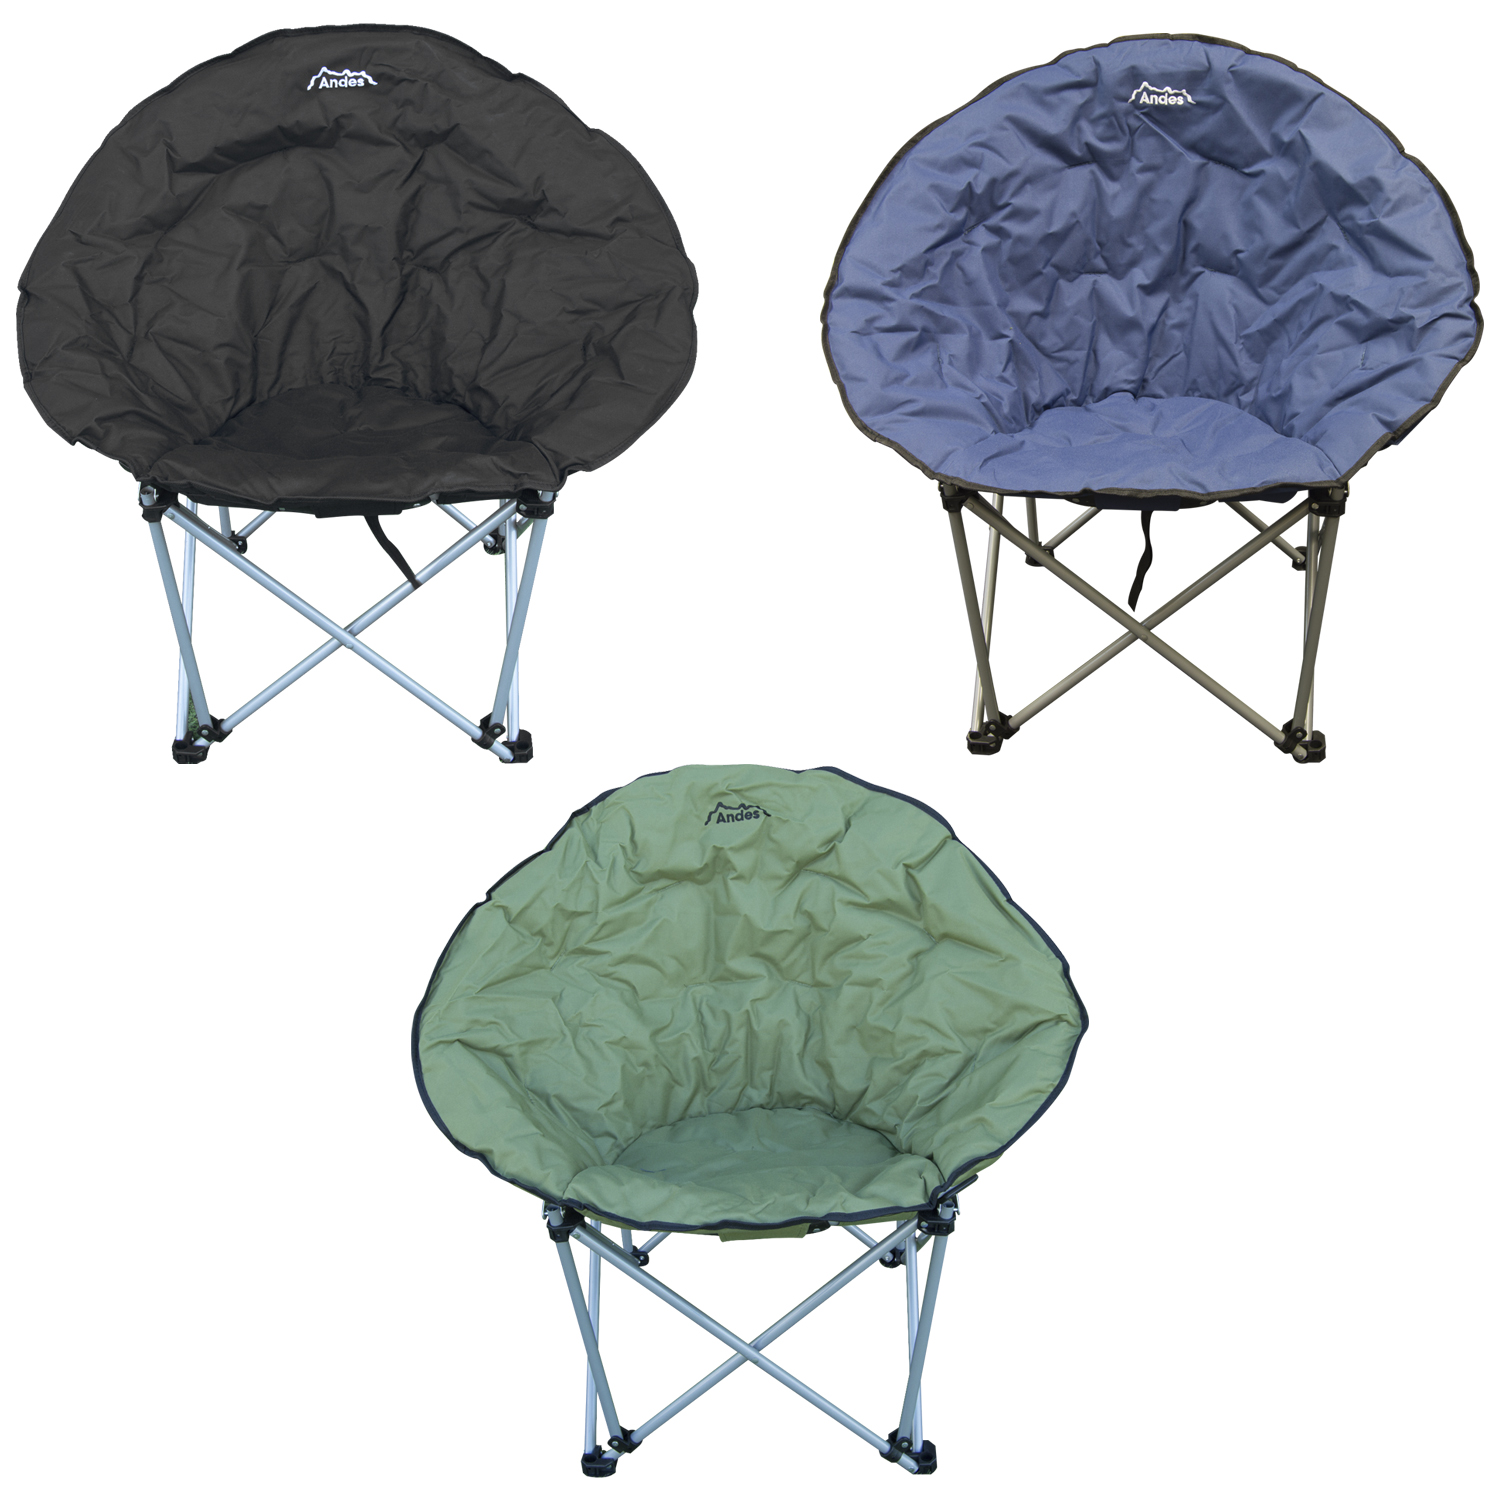 Sentinel Andes Folding Camping Moon Chair Outdoor Garden Picnic Lounger